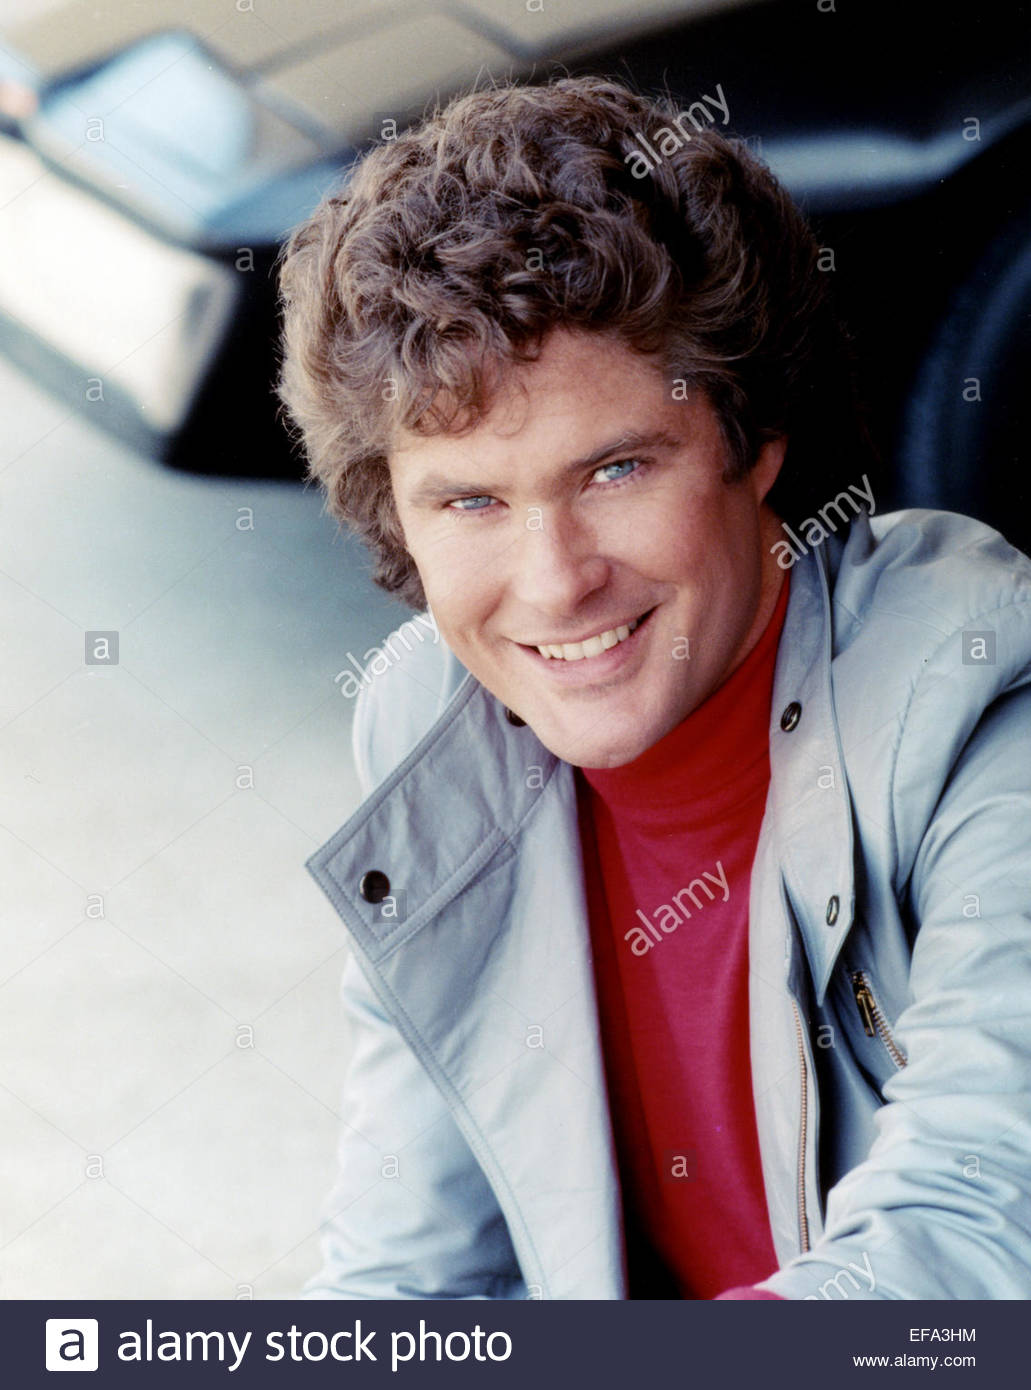 Knight Rider Rising Sun additionally Be B C F Dd Edf D X together with  furthermore Kr besides Knight Rider Kitt Replica. on david hasselhoff knight rider